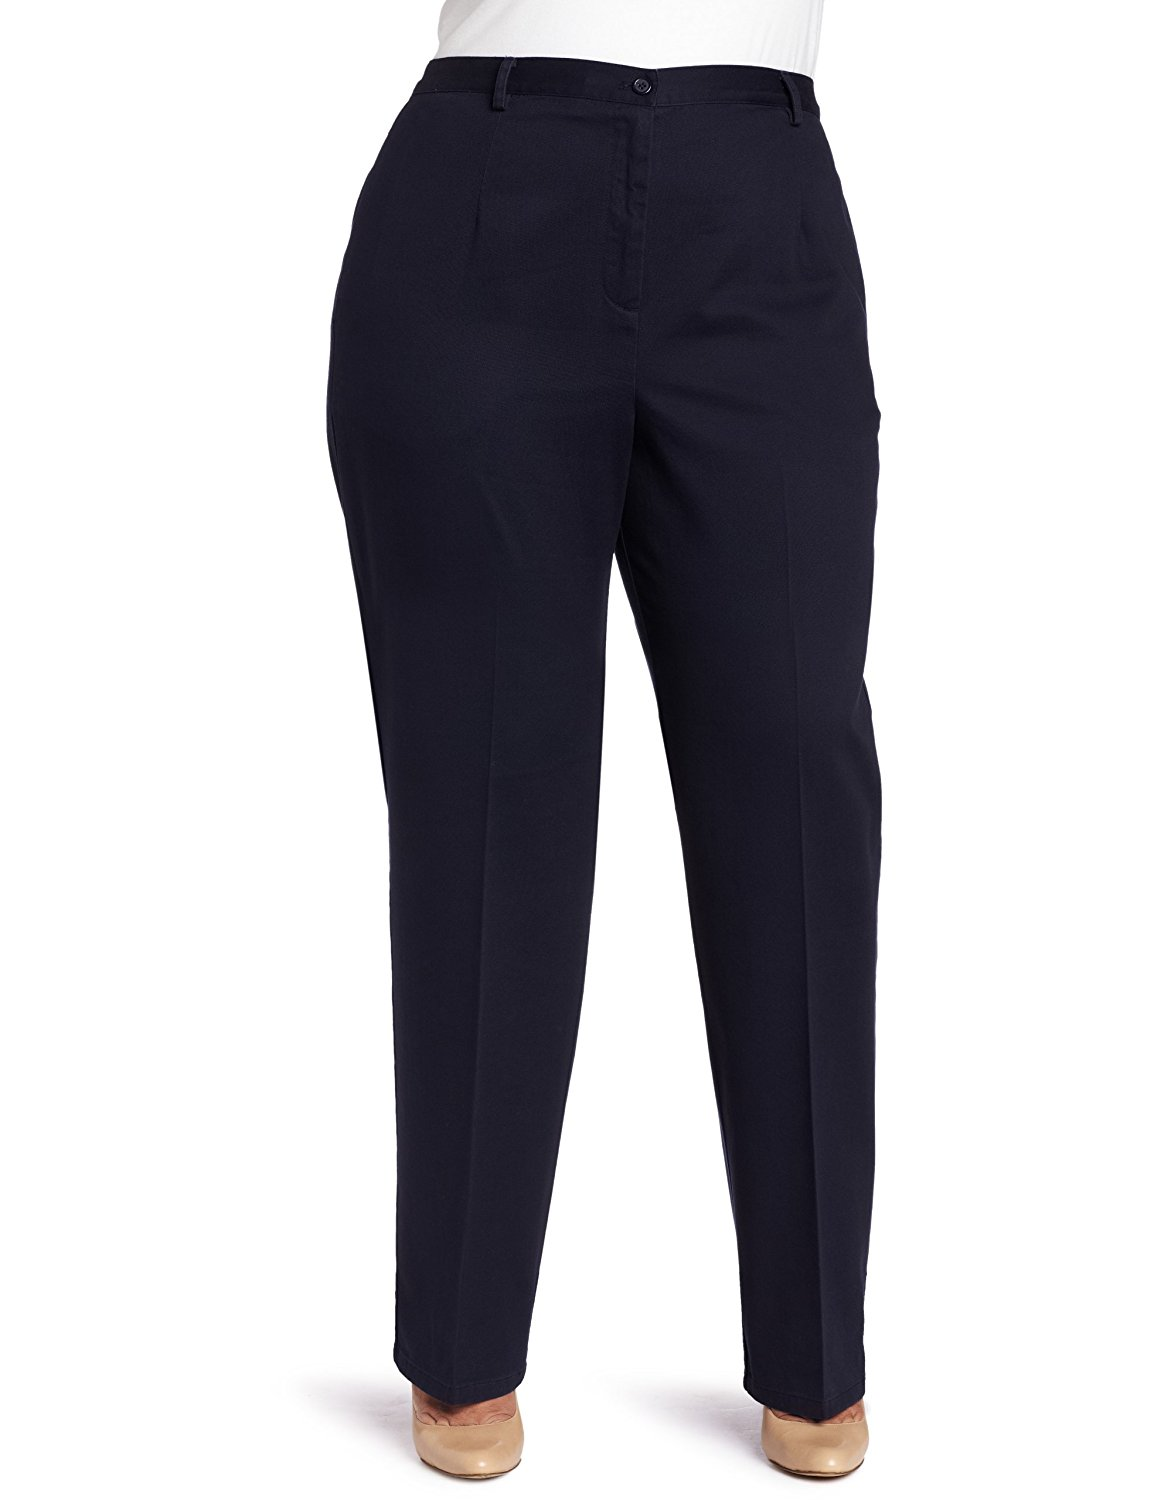 1ed13b41bc37 Get Quotations · Pendleton Women s Plus-Size Wrinkle Less Everyday Chinos  Pant